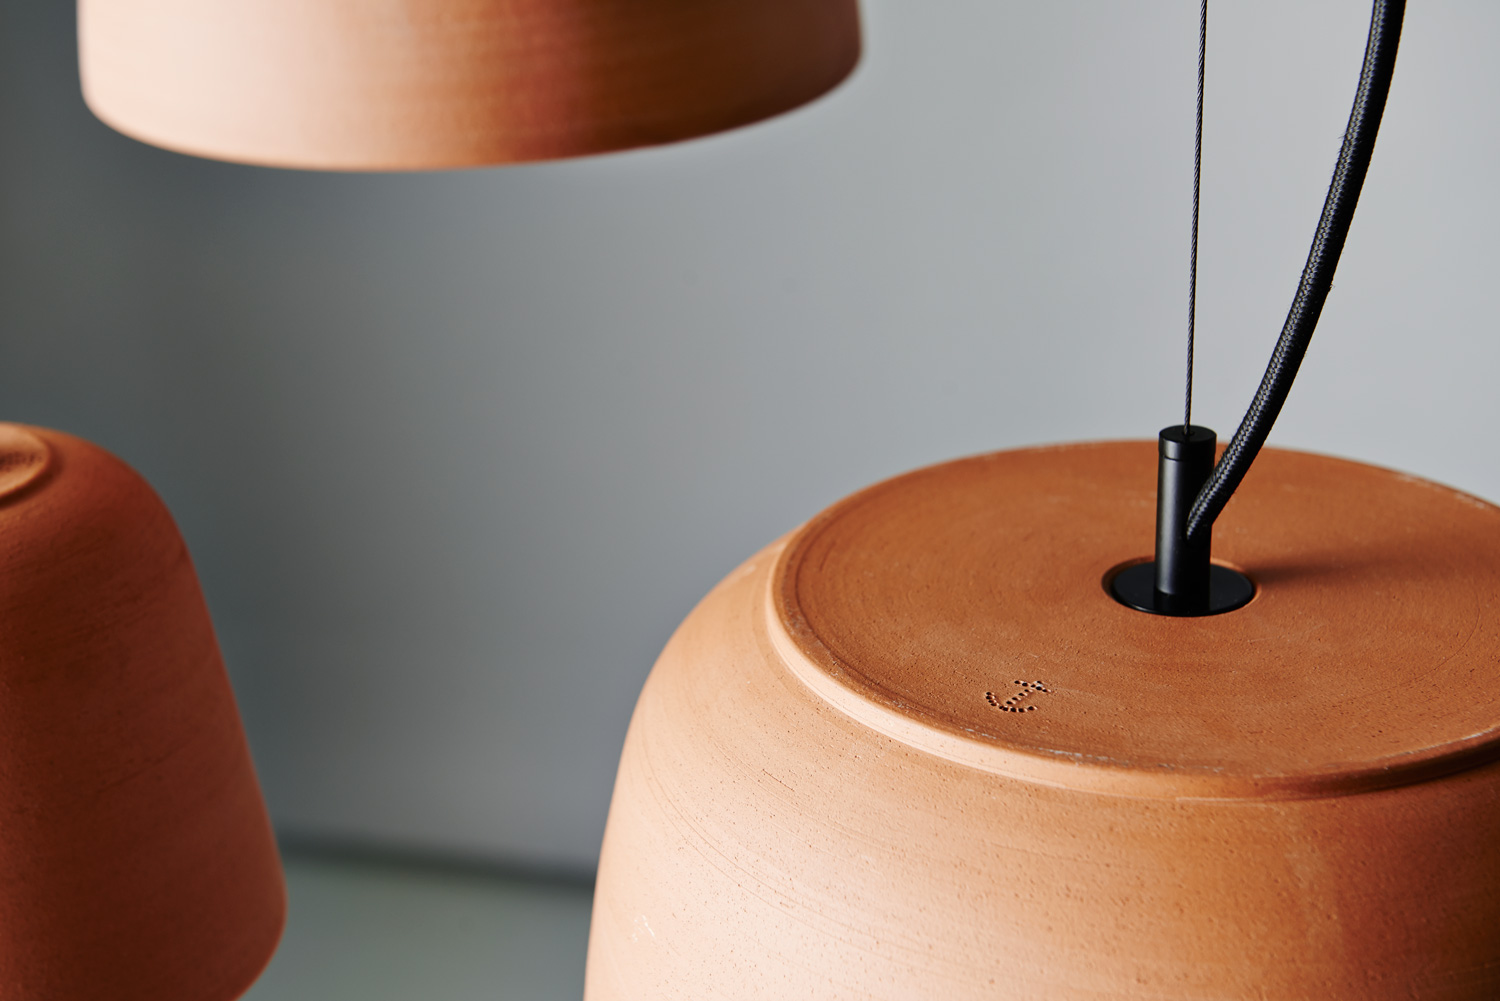 Potter Light by Bruce Rowe from Anchor Ceramics | Yellowtrace